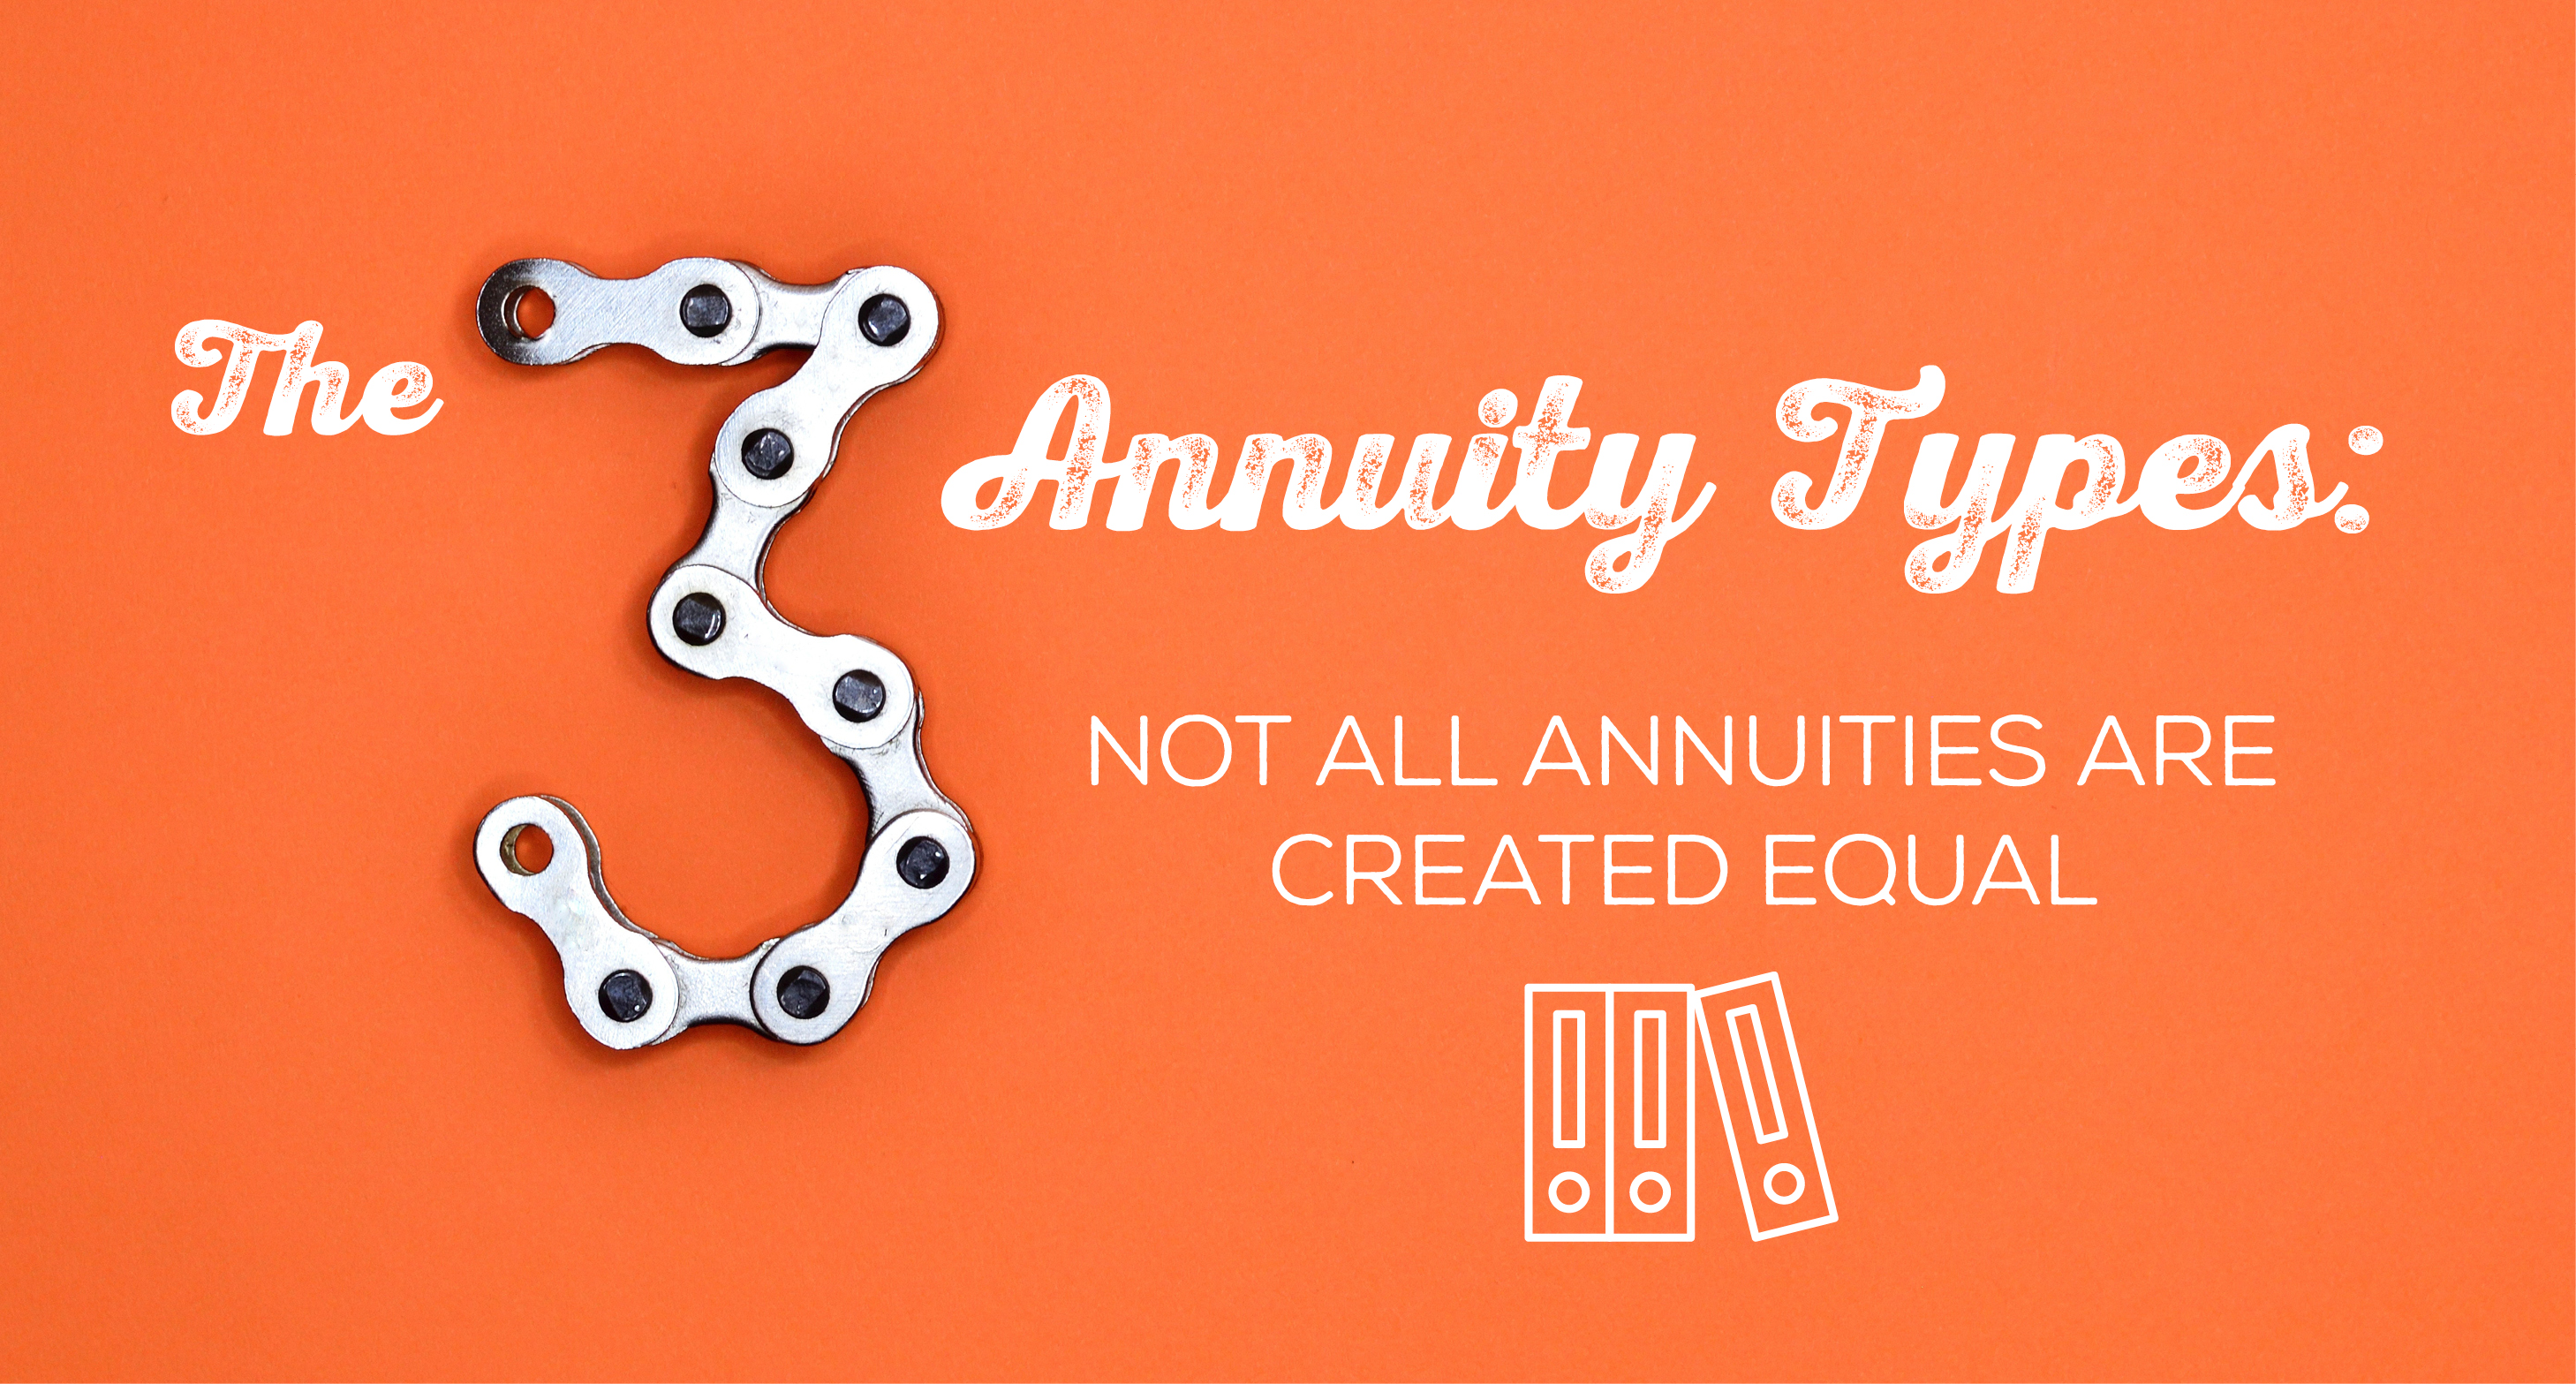 NH-The-3-Annuity-Types-Not-All-Annuities-Are-Created-Equal